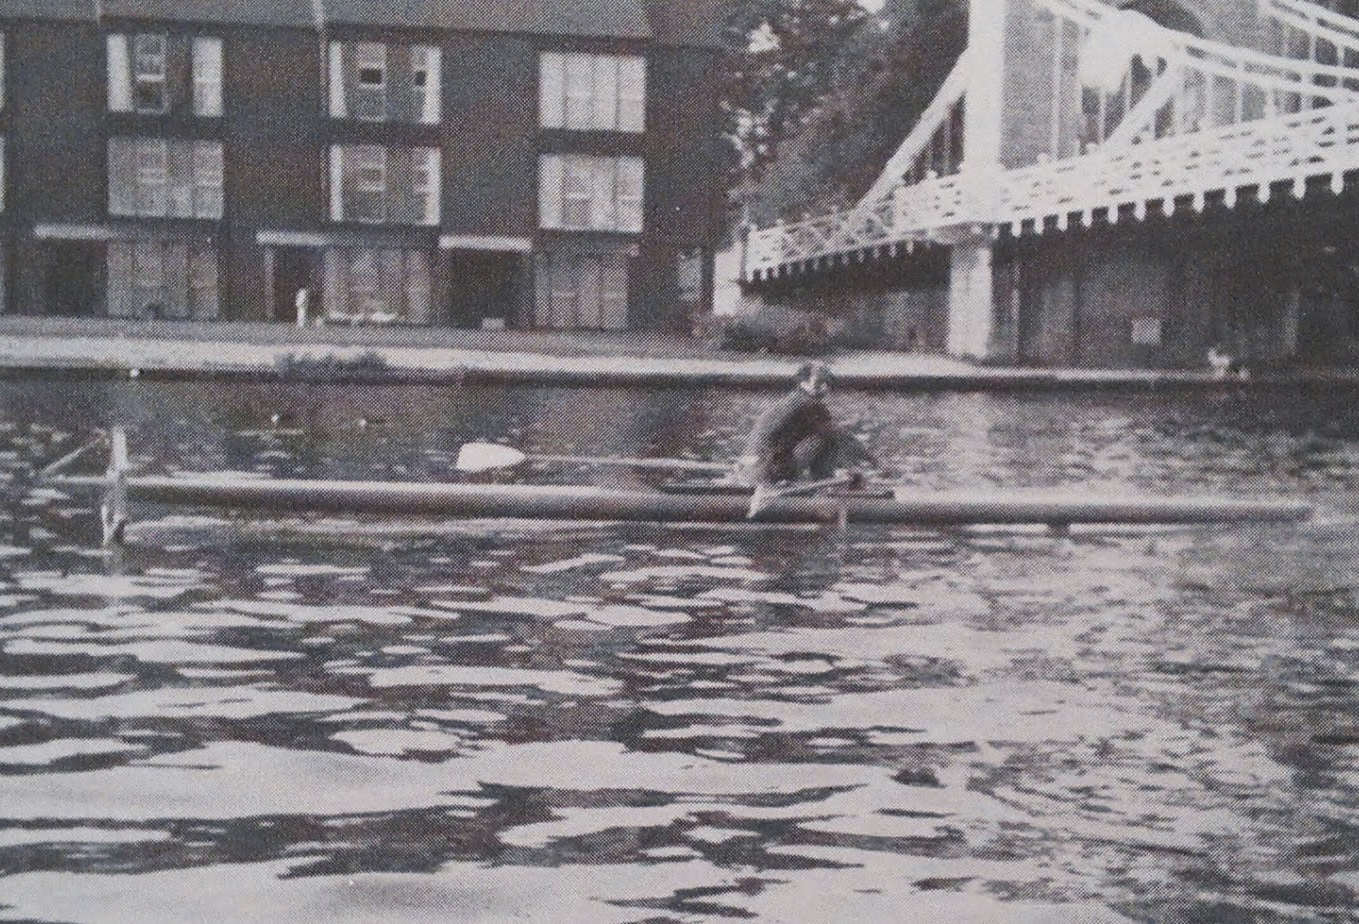 James Grogono lifted his rowed shell on hydrofoils in 1975